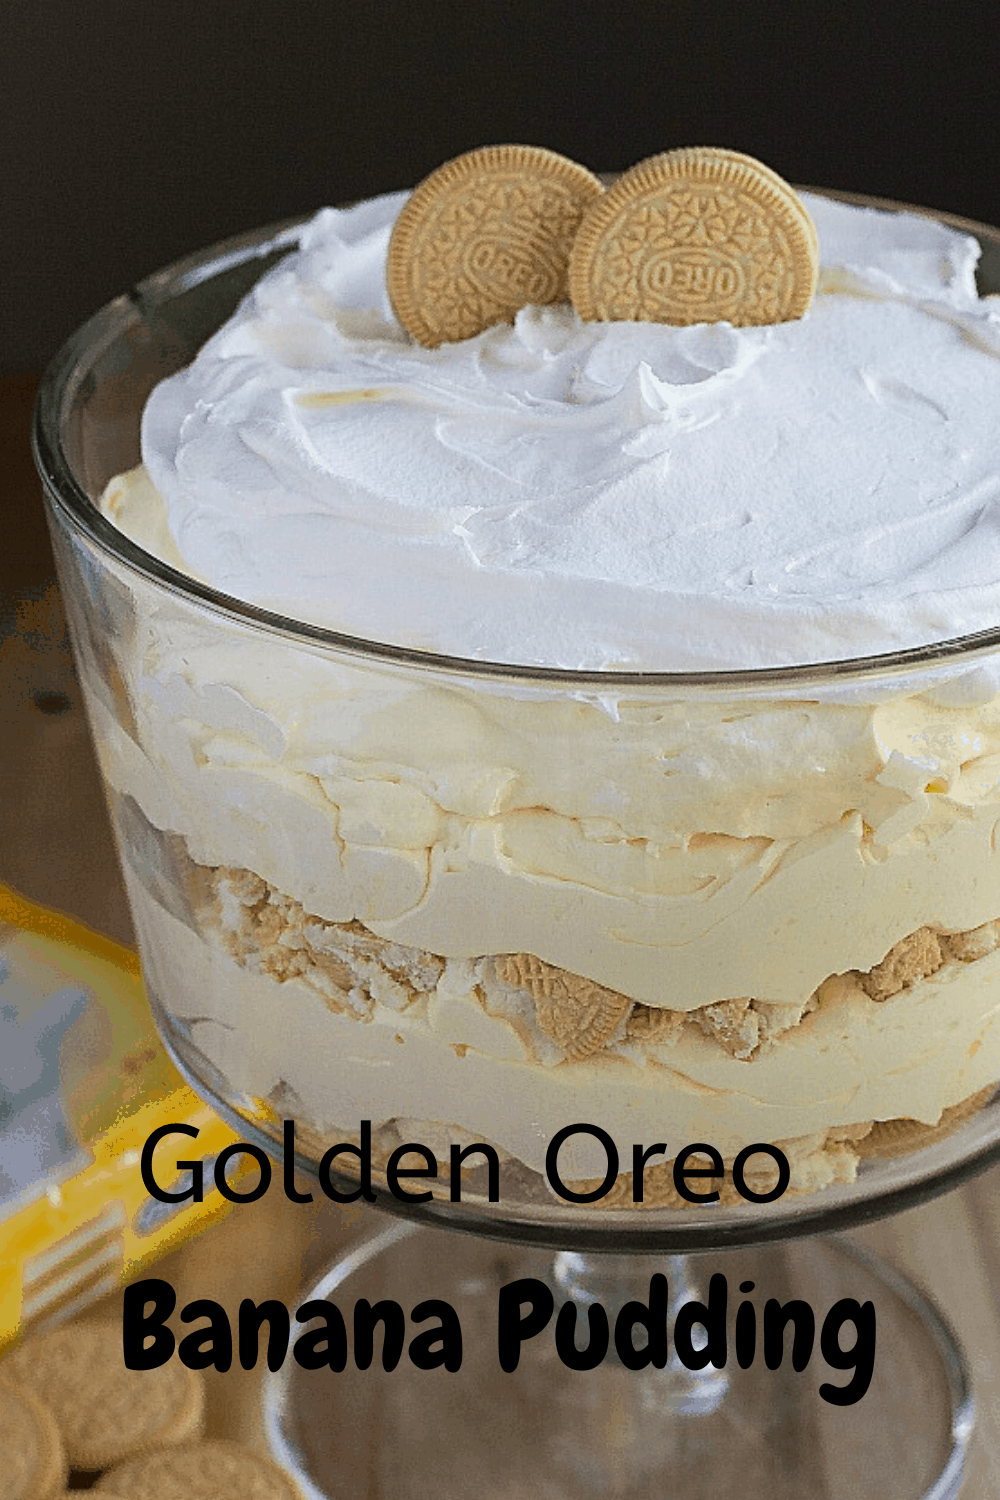 This Golden Oreo Banana Pudding is the best pudding I have ever had.